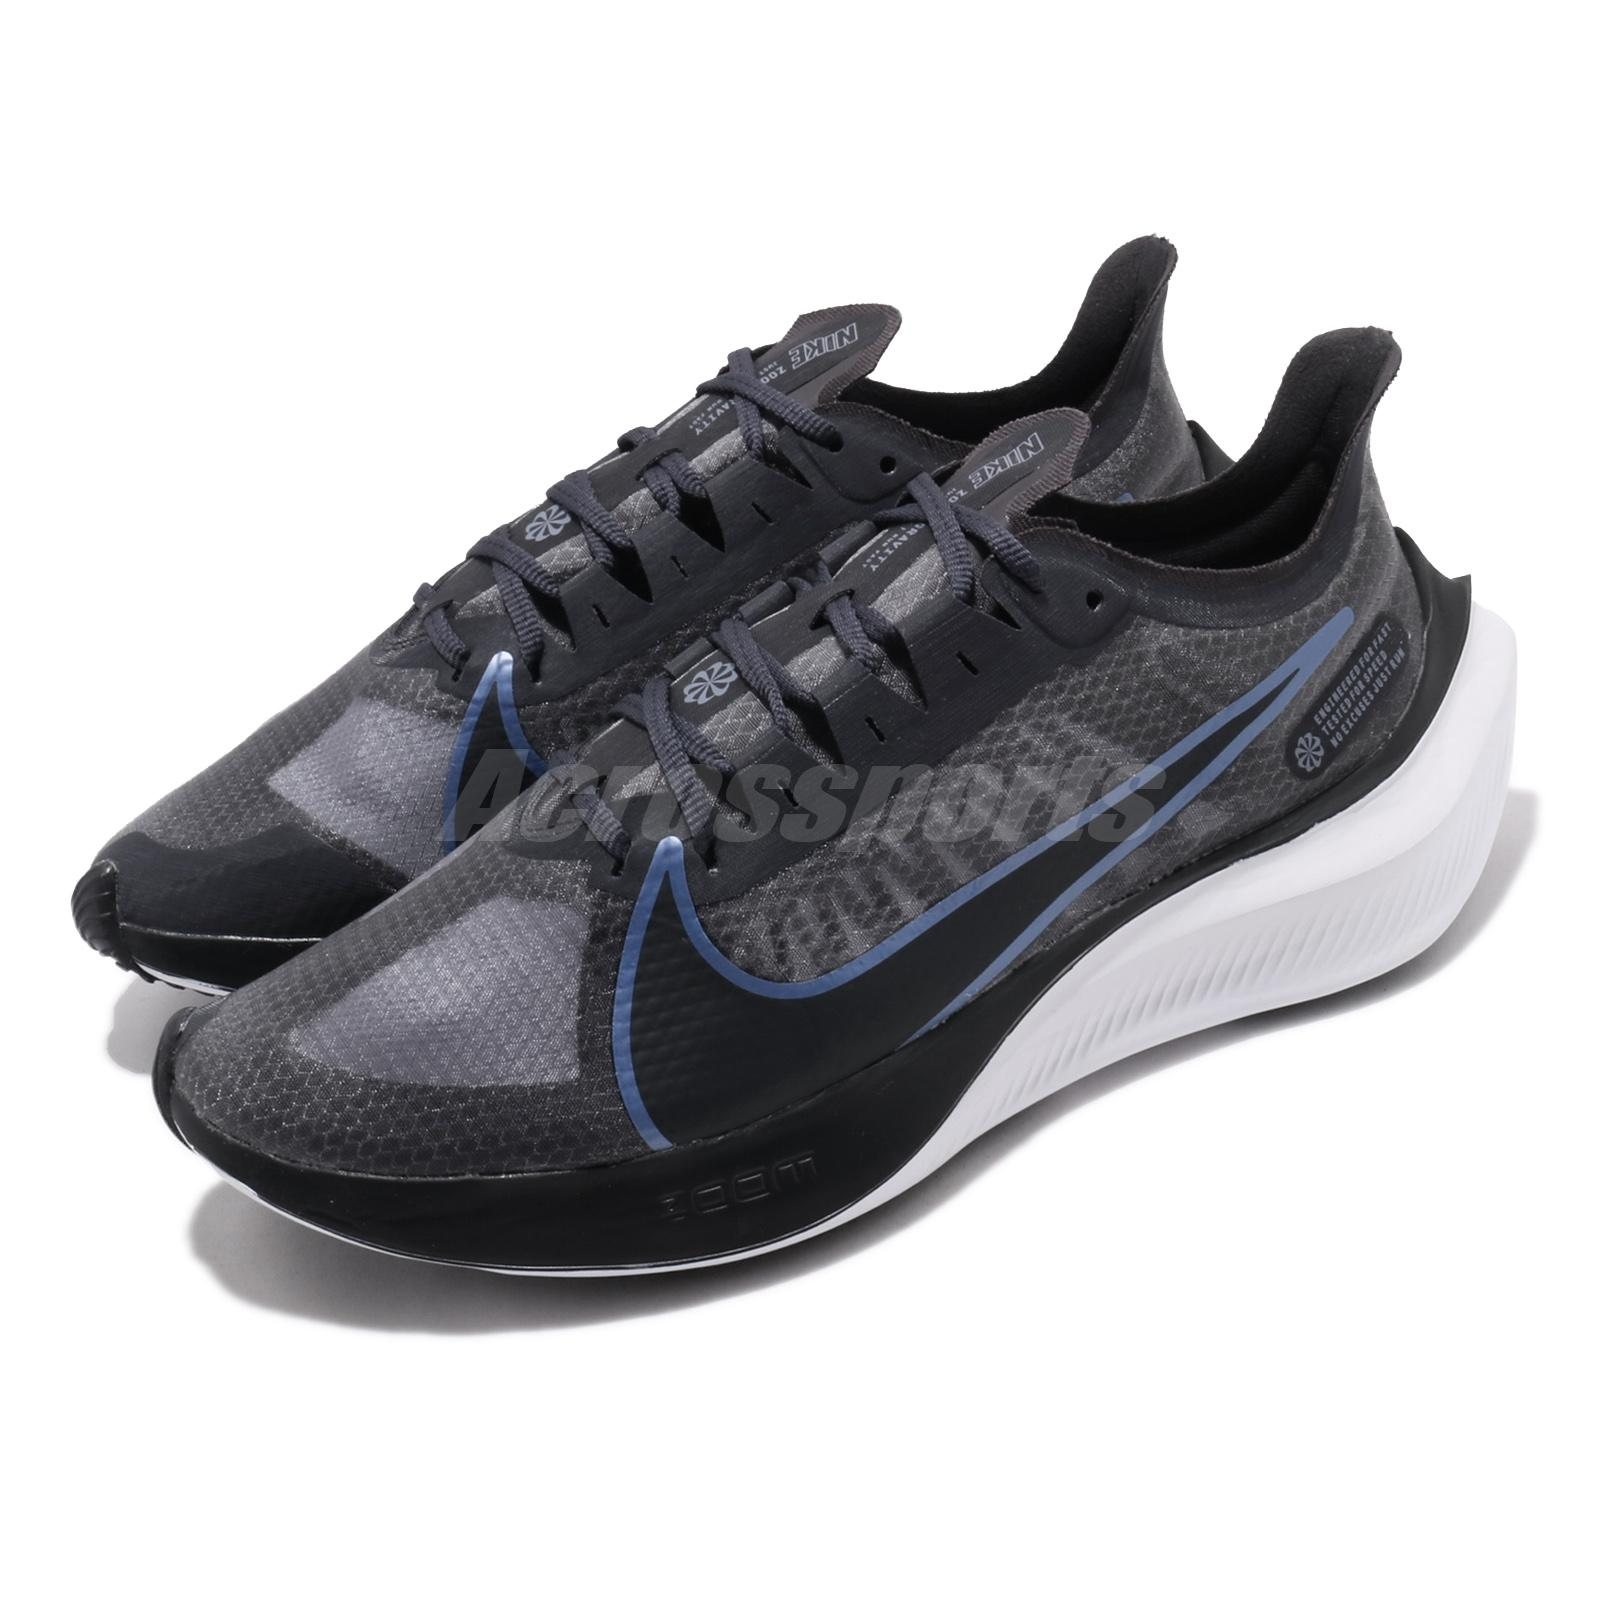 Details about Nike Zoom Gravity Oil Grey Blue White Men Running Shoes  Sneakers BQ3202-007